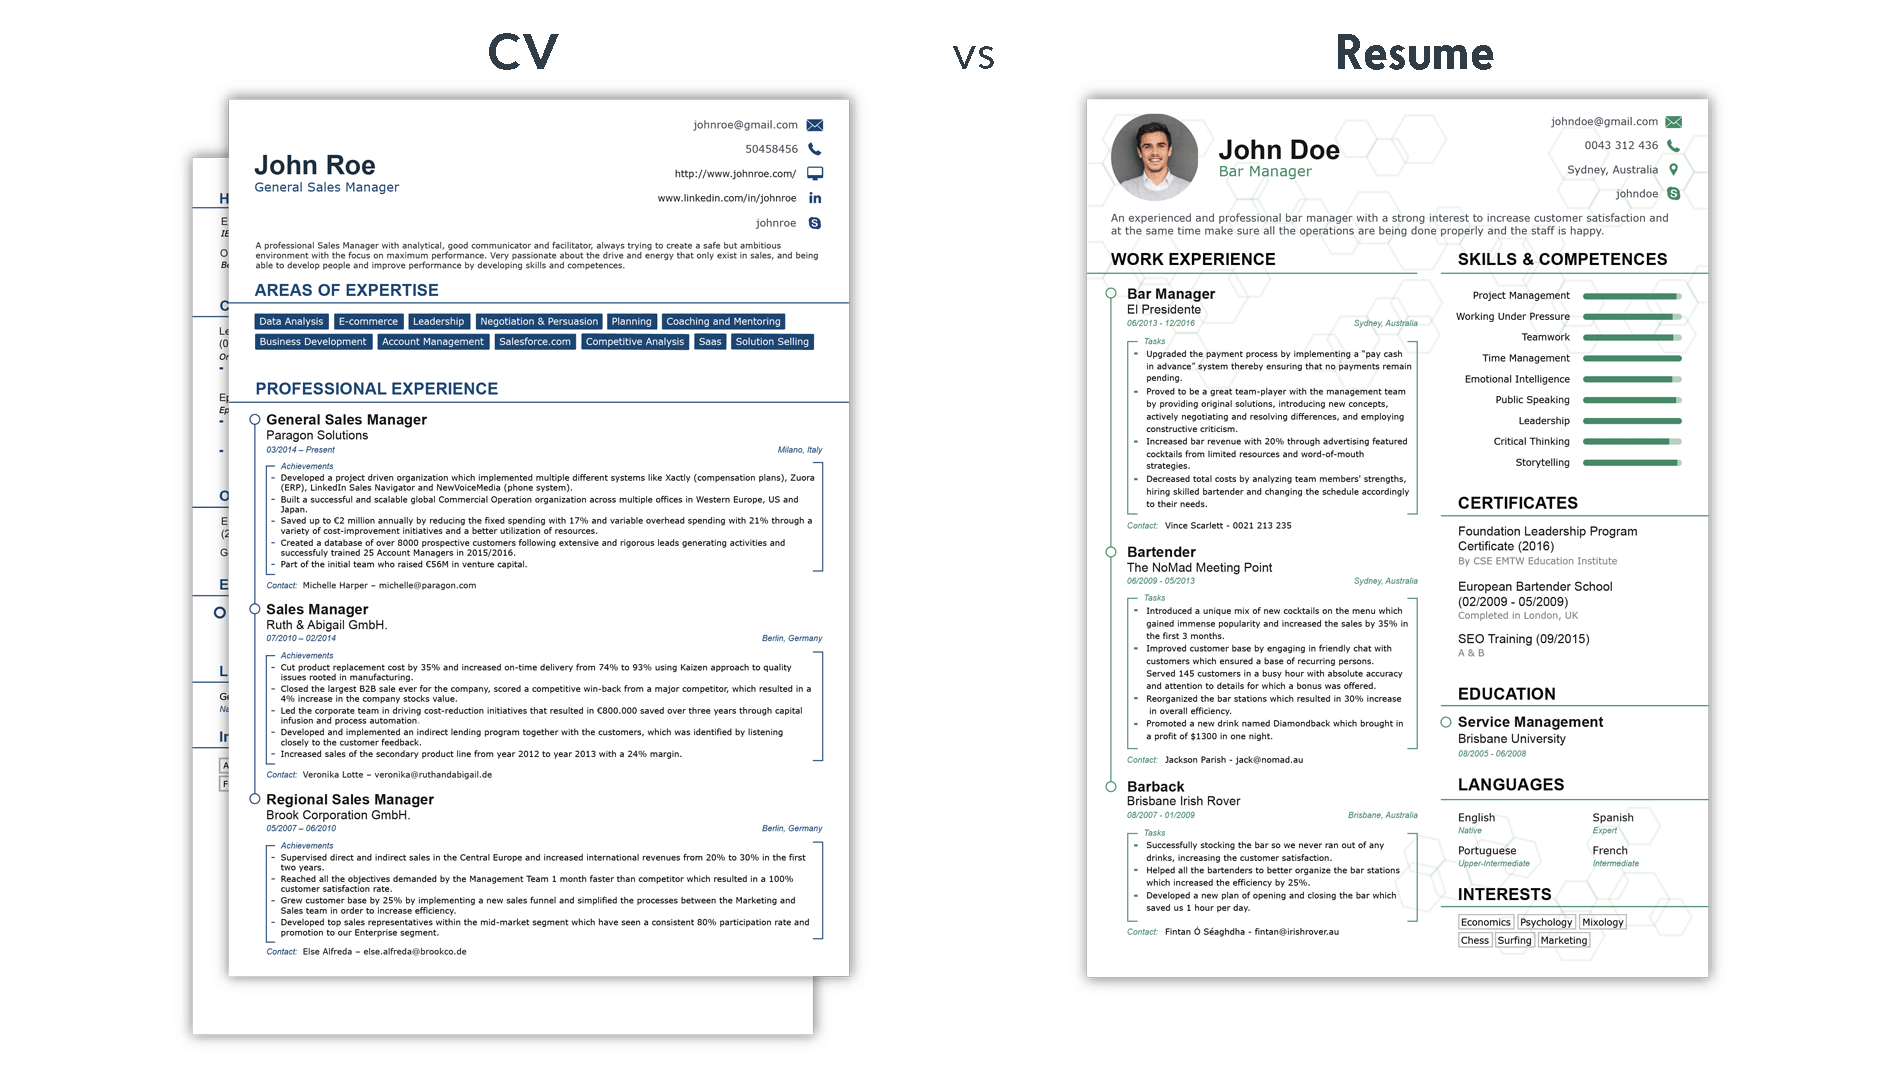 Curriculum Vitae Vs Resume  How To Wright A Resume